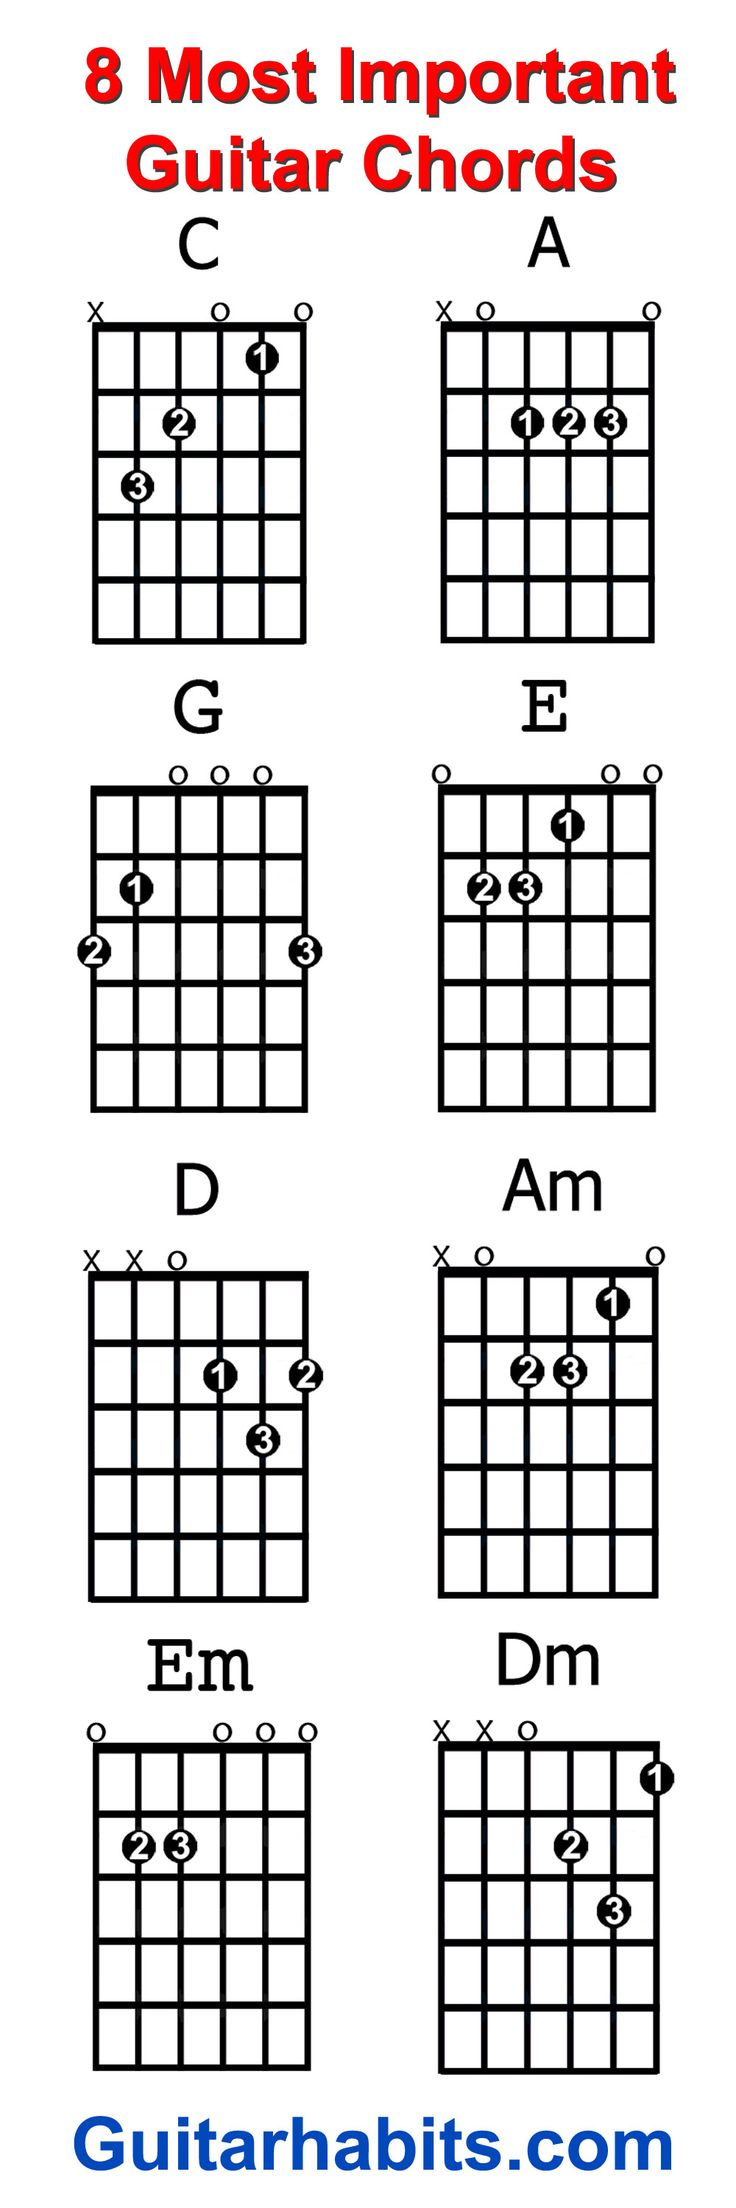 Best 25 guitar songs ideas on pinterest guitar chords cords of where do you start when you want to guitar chords learn to play guitar the 8 chords every beginner guitar player should learn first are c a g e hexwebz Gallery